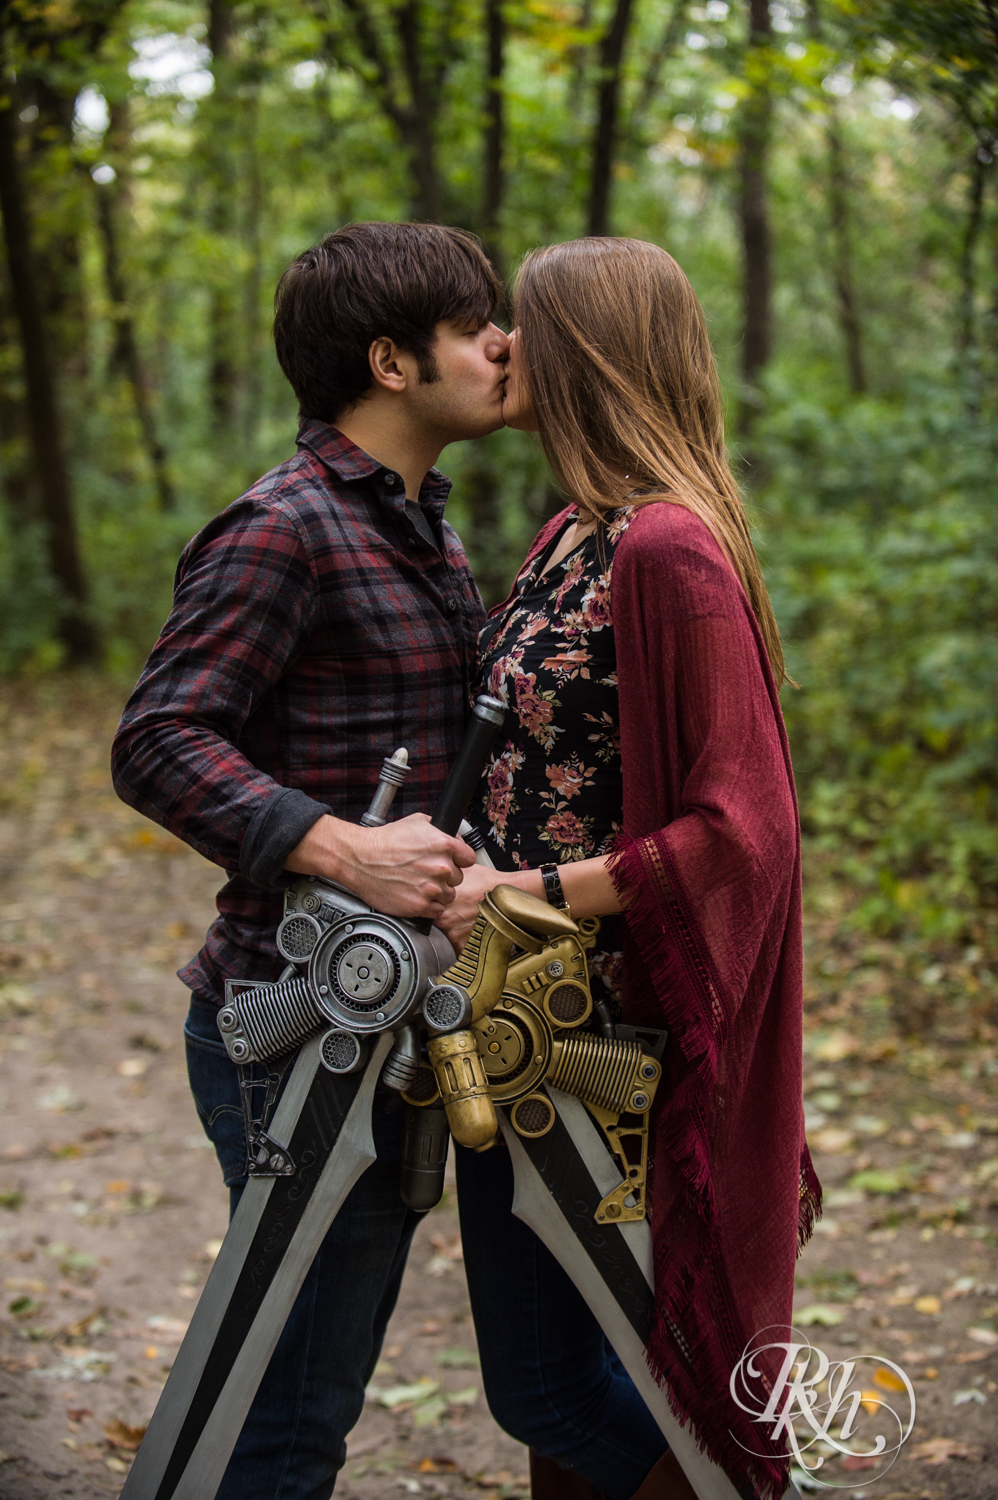 Katie & Brian - Minnesota Engagement Photography - Cosplay - RKH Images - Blog  (18 of 20).jpg